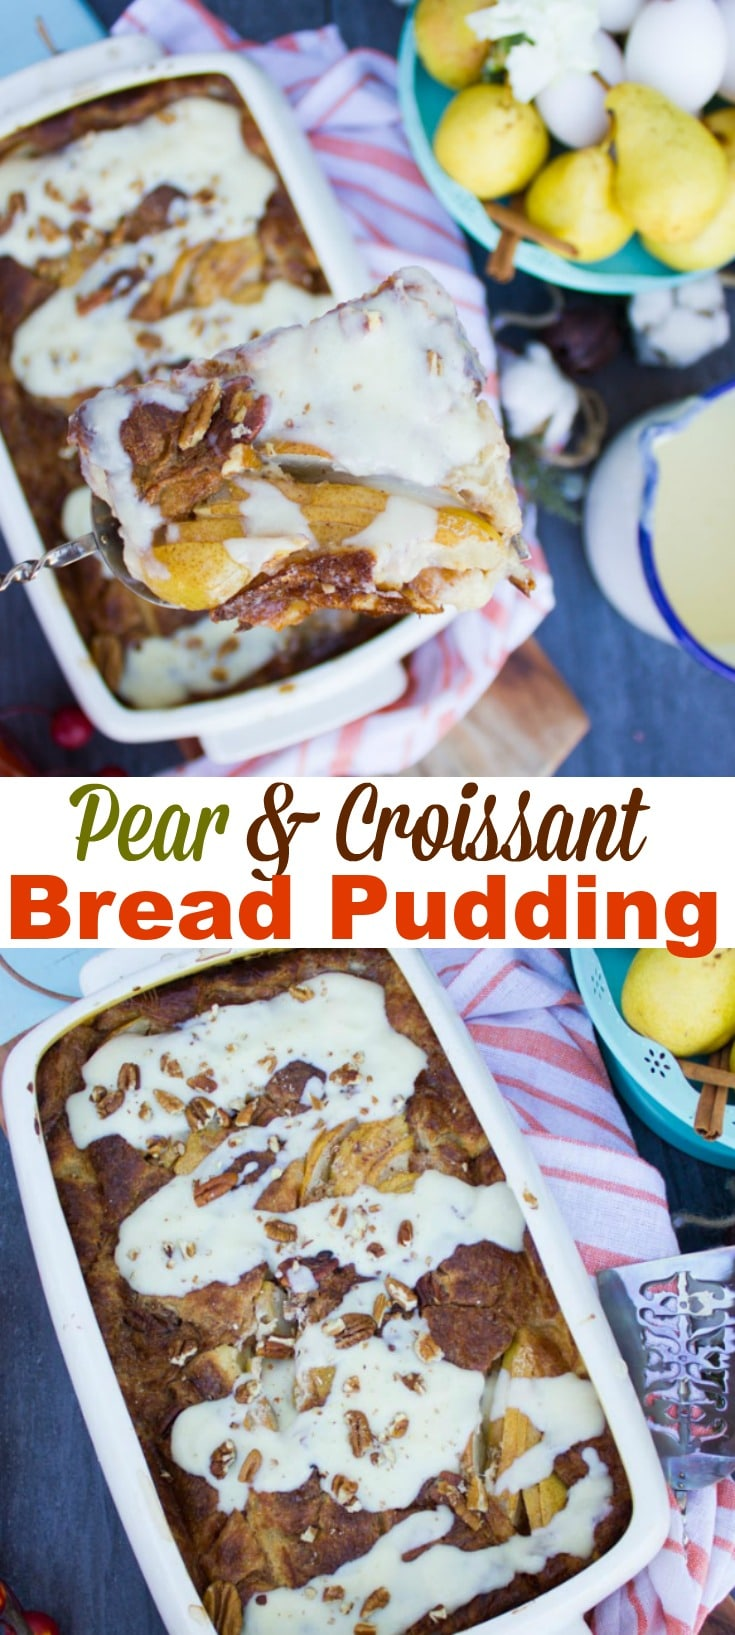 There's something about bread pudding that screams comfort, and this Pear Croissant Bread Pudding with Creme Anglaise takes comfort to an even more luscious level! #BreadPudding #Pear #HolidayDessert